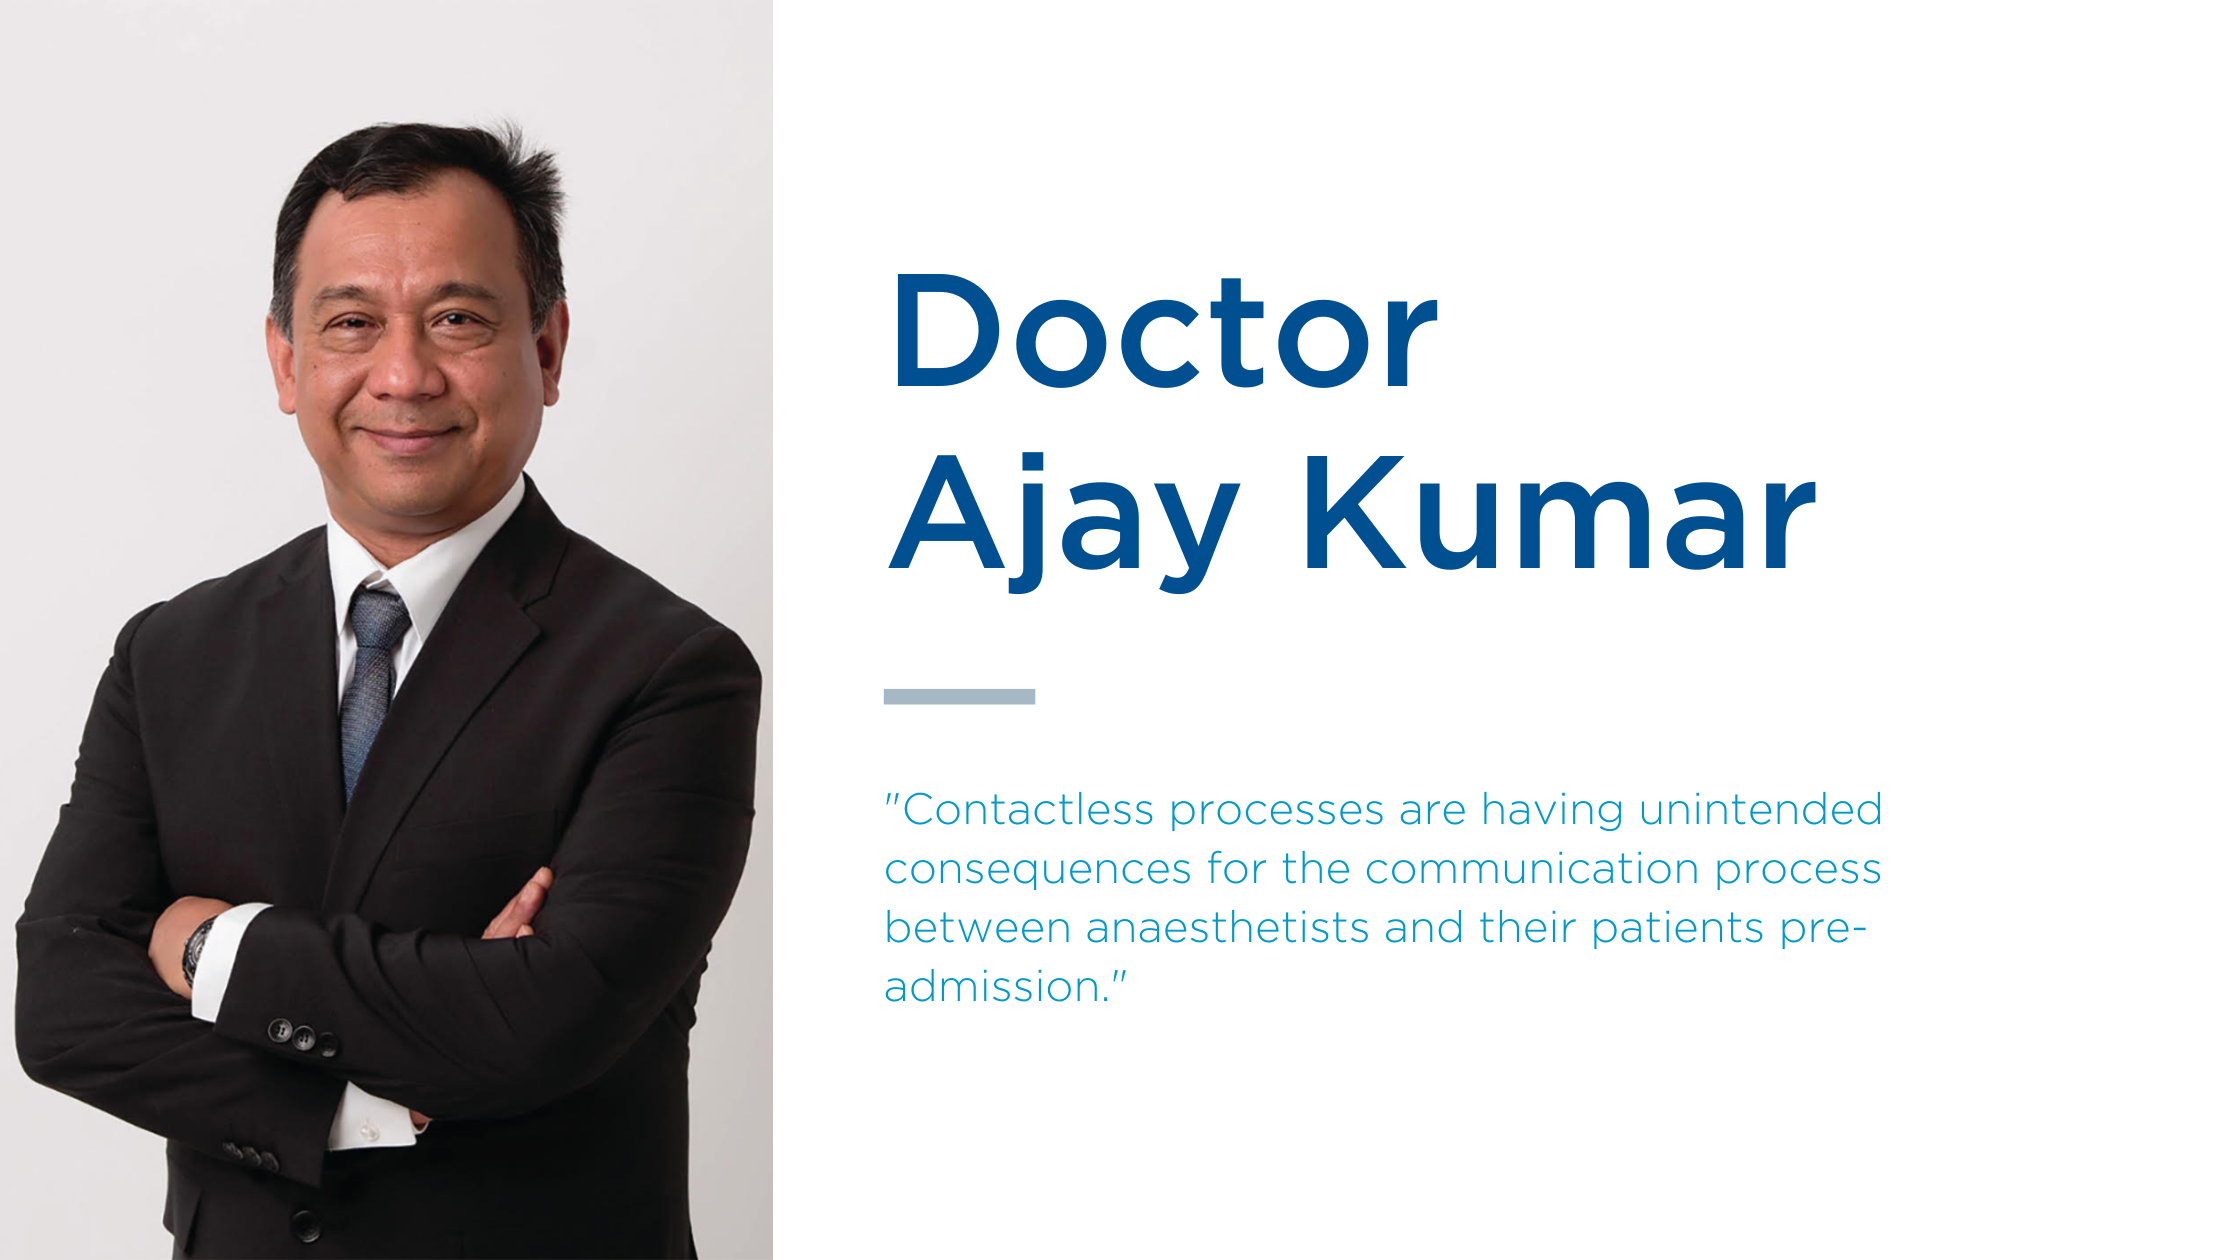 Dr Ajay Kumar discusses informed patient consent